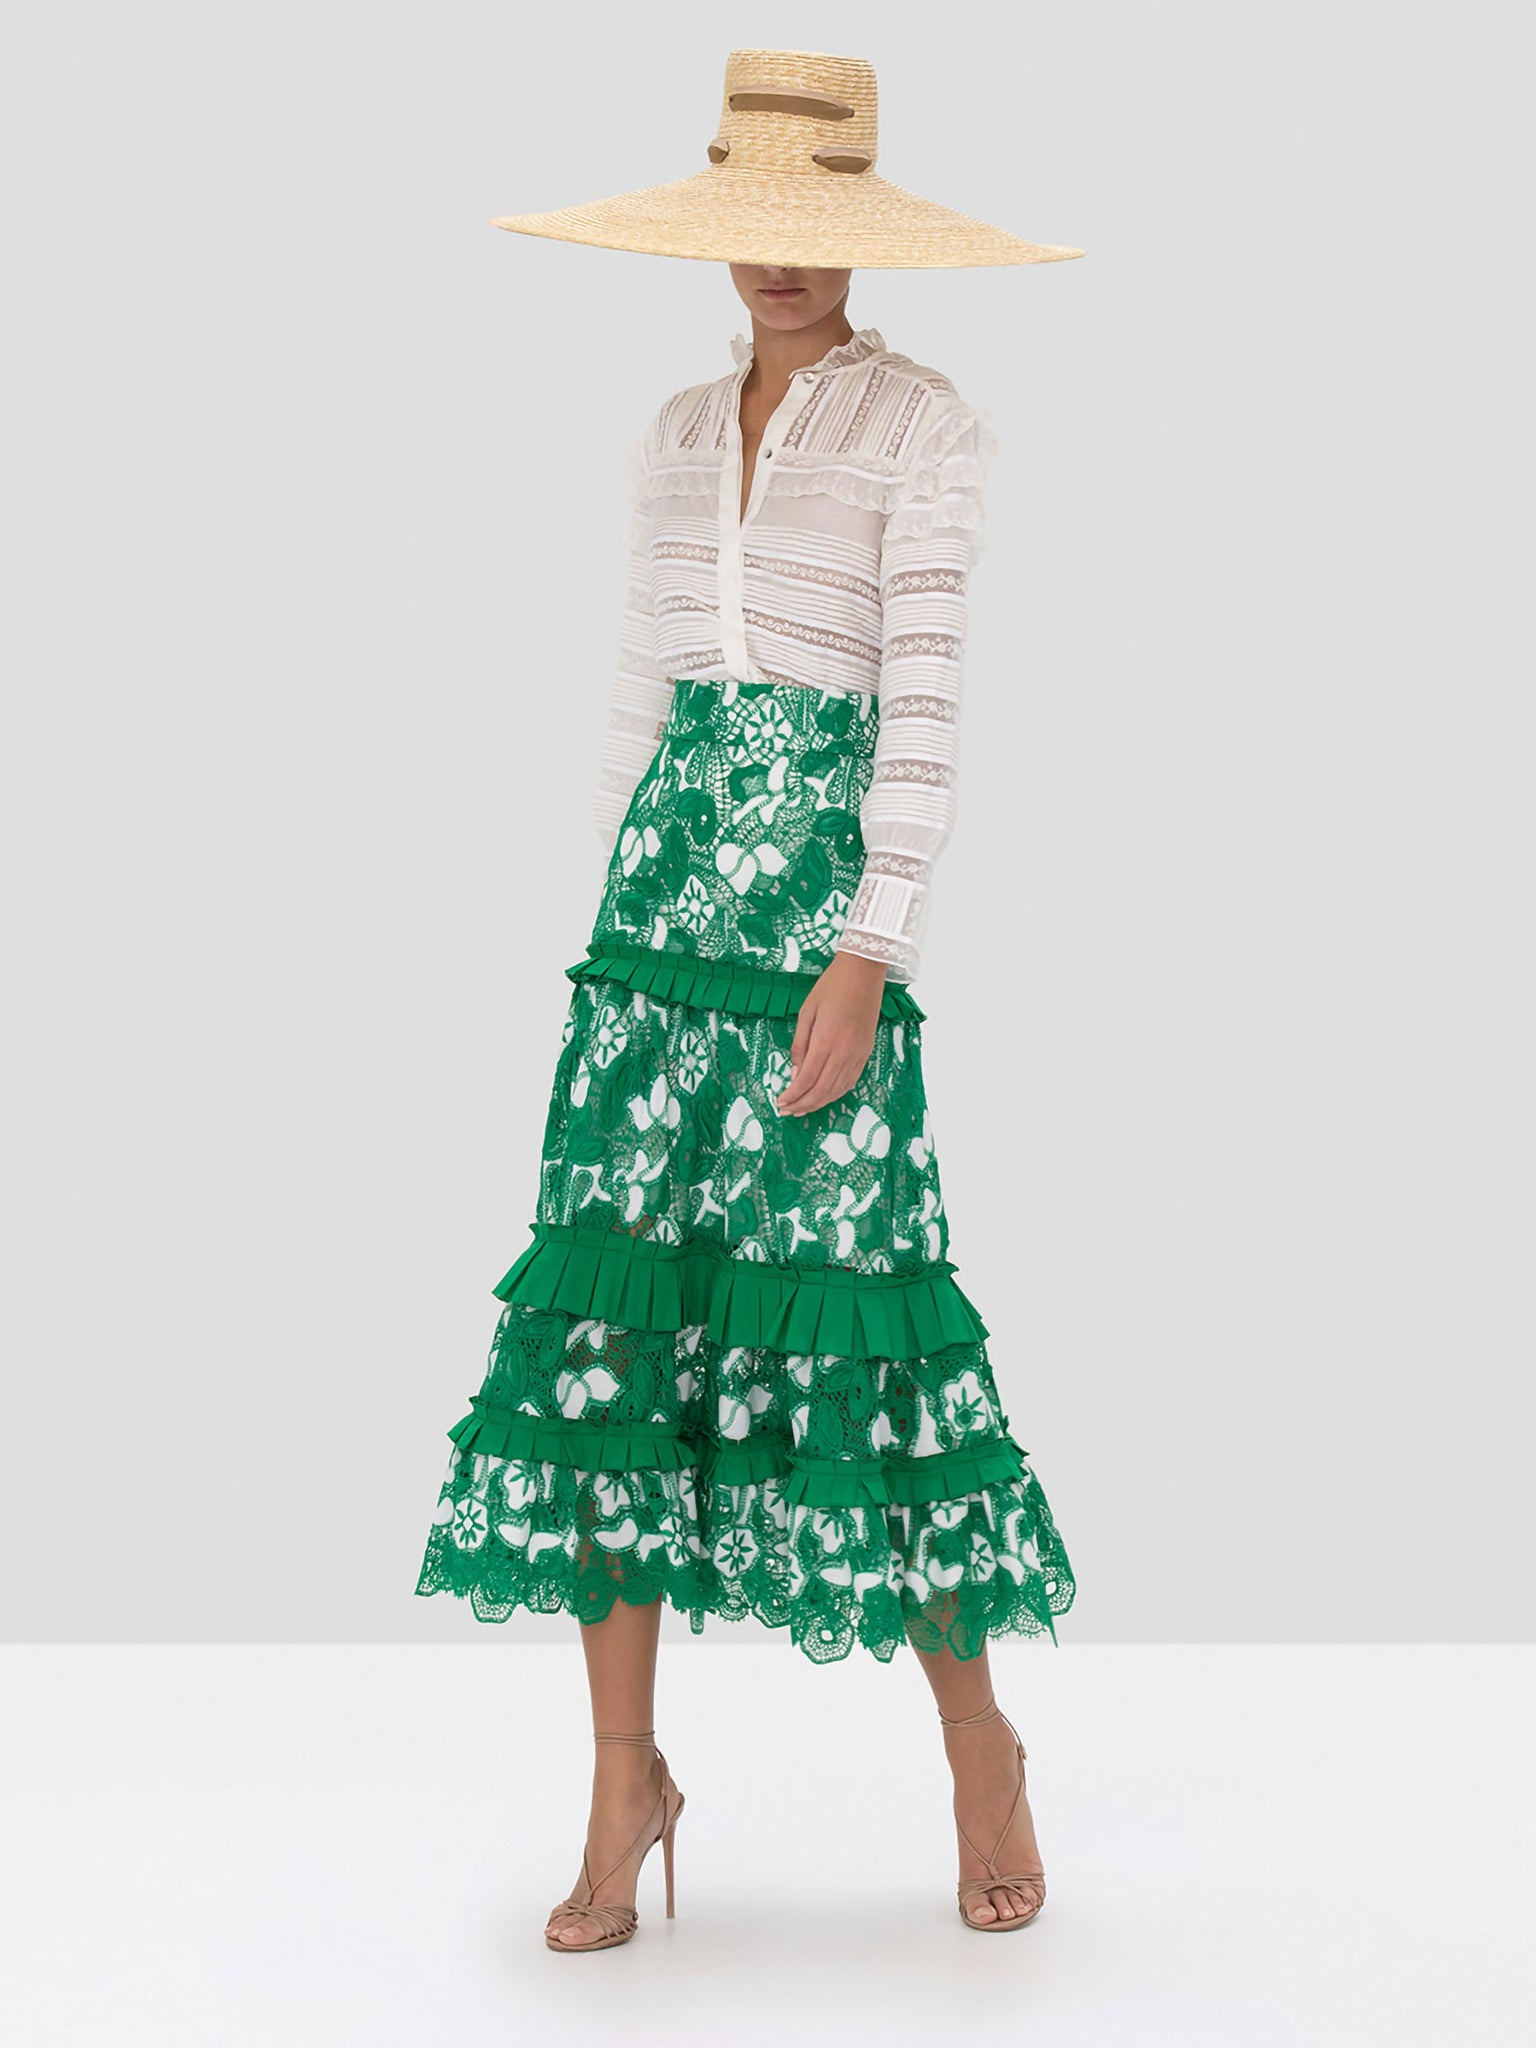 Alexis Marsa Skirt in Emerald Embroidered Lace from Spring Summer 2020 Collection